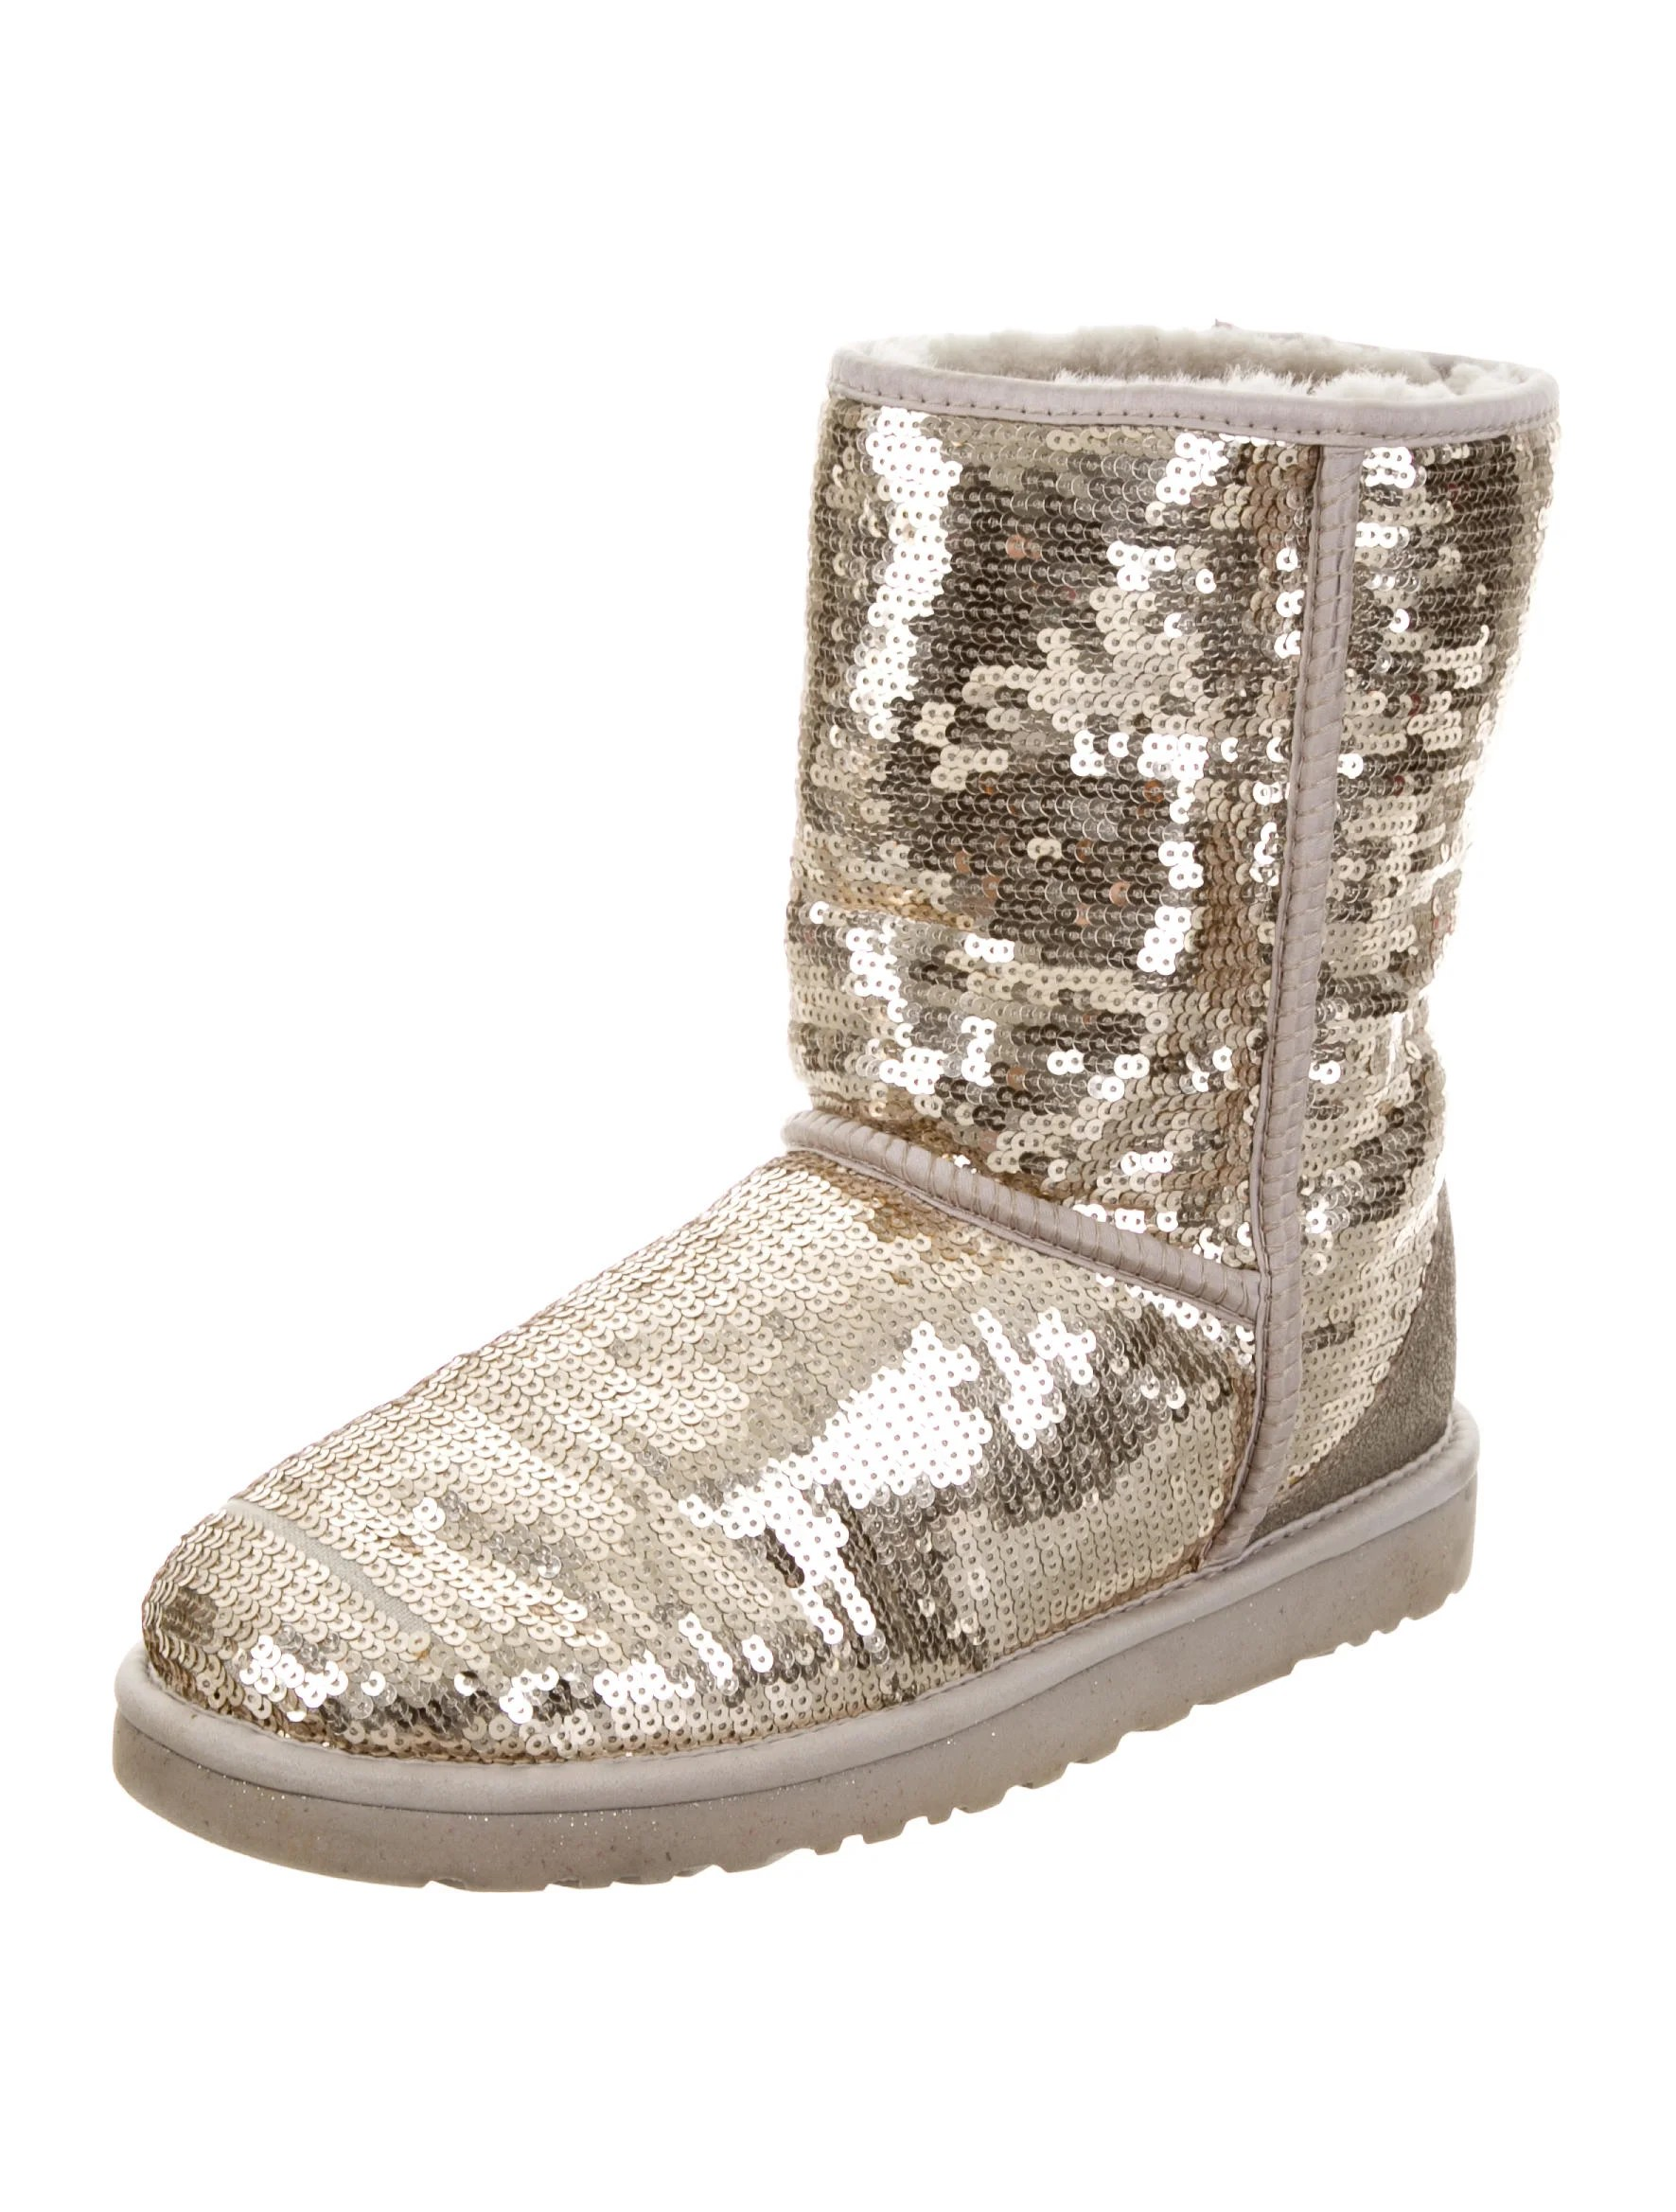 Ugg Australia Sequined Classic Short Boots Shoes